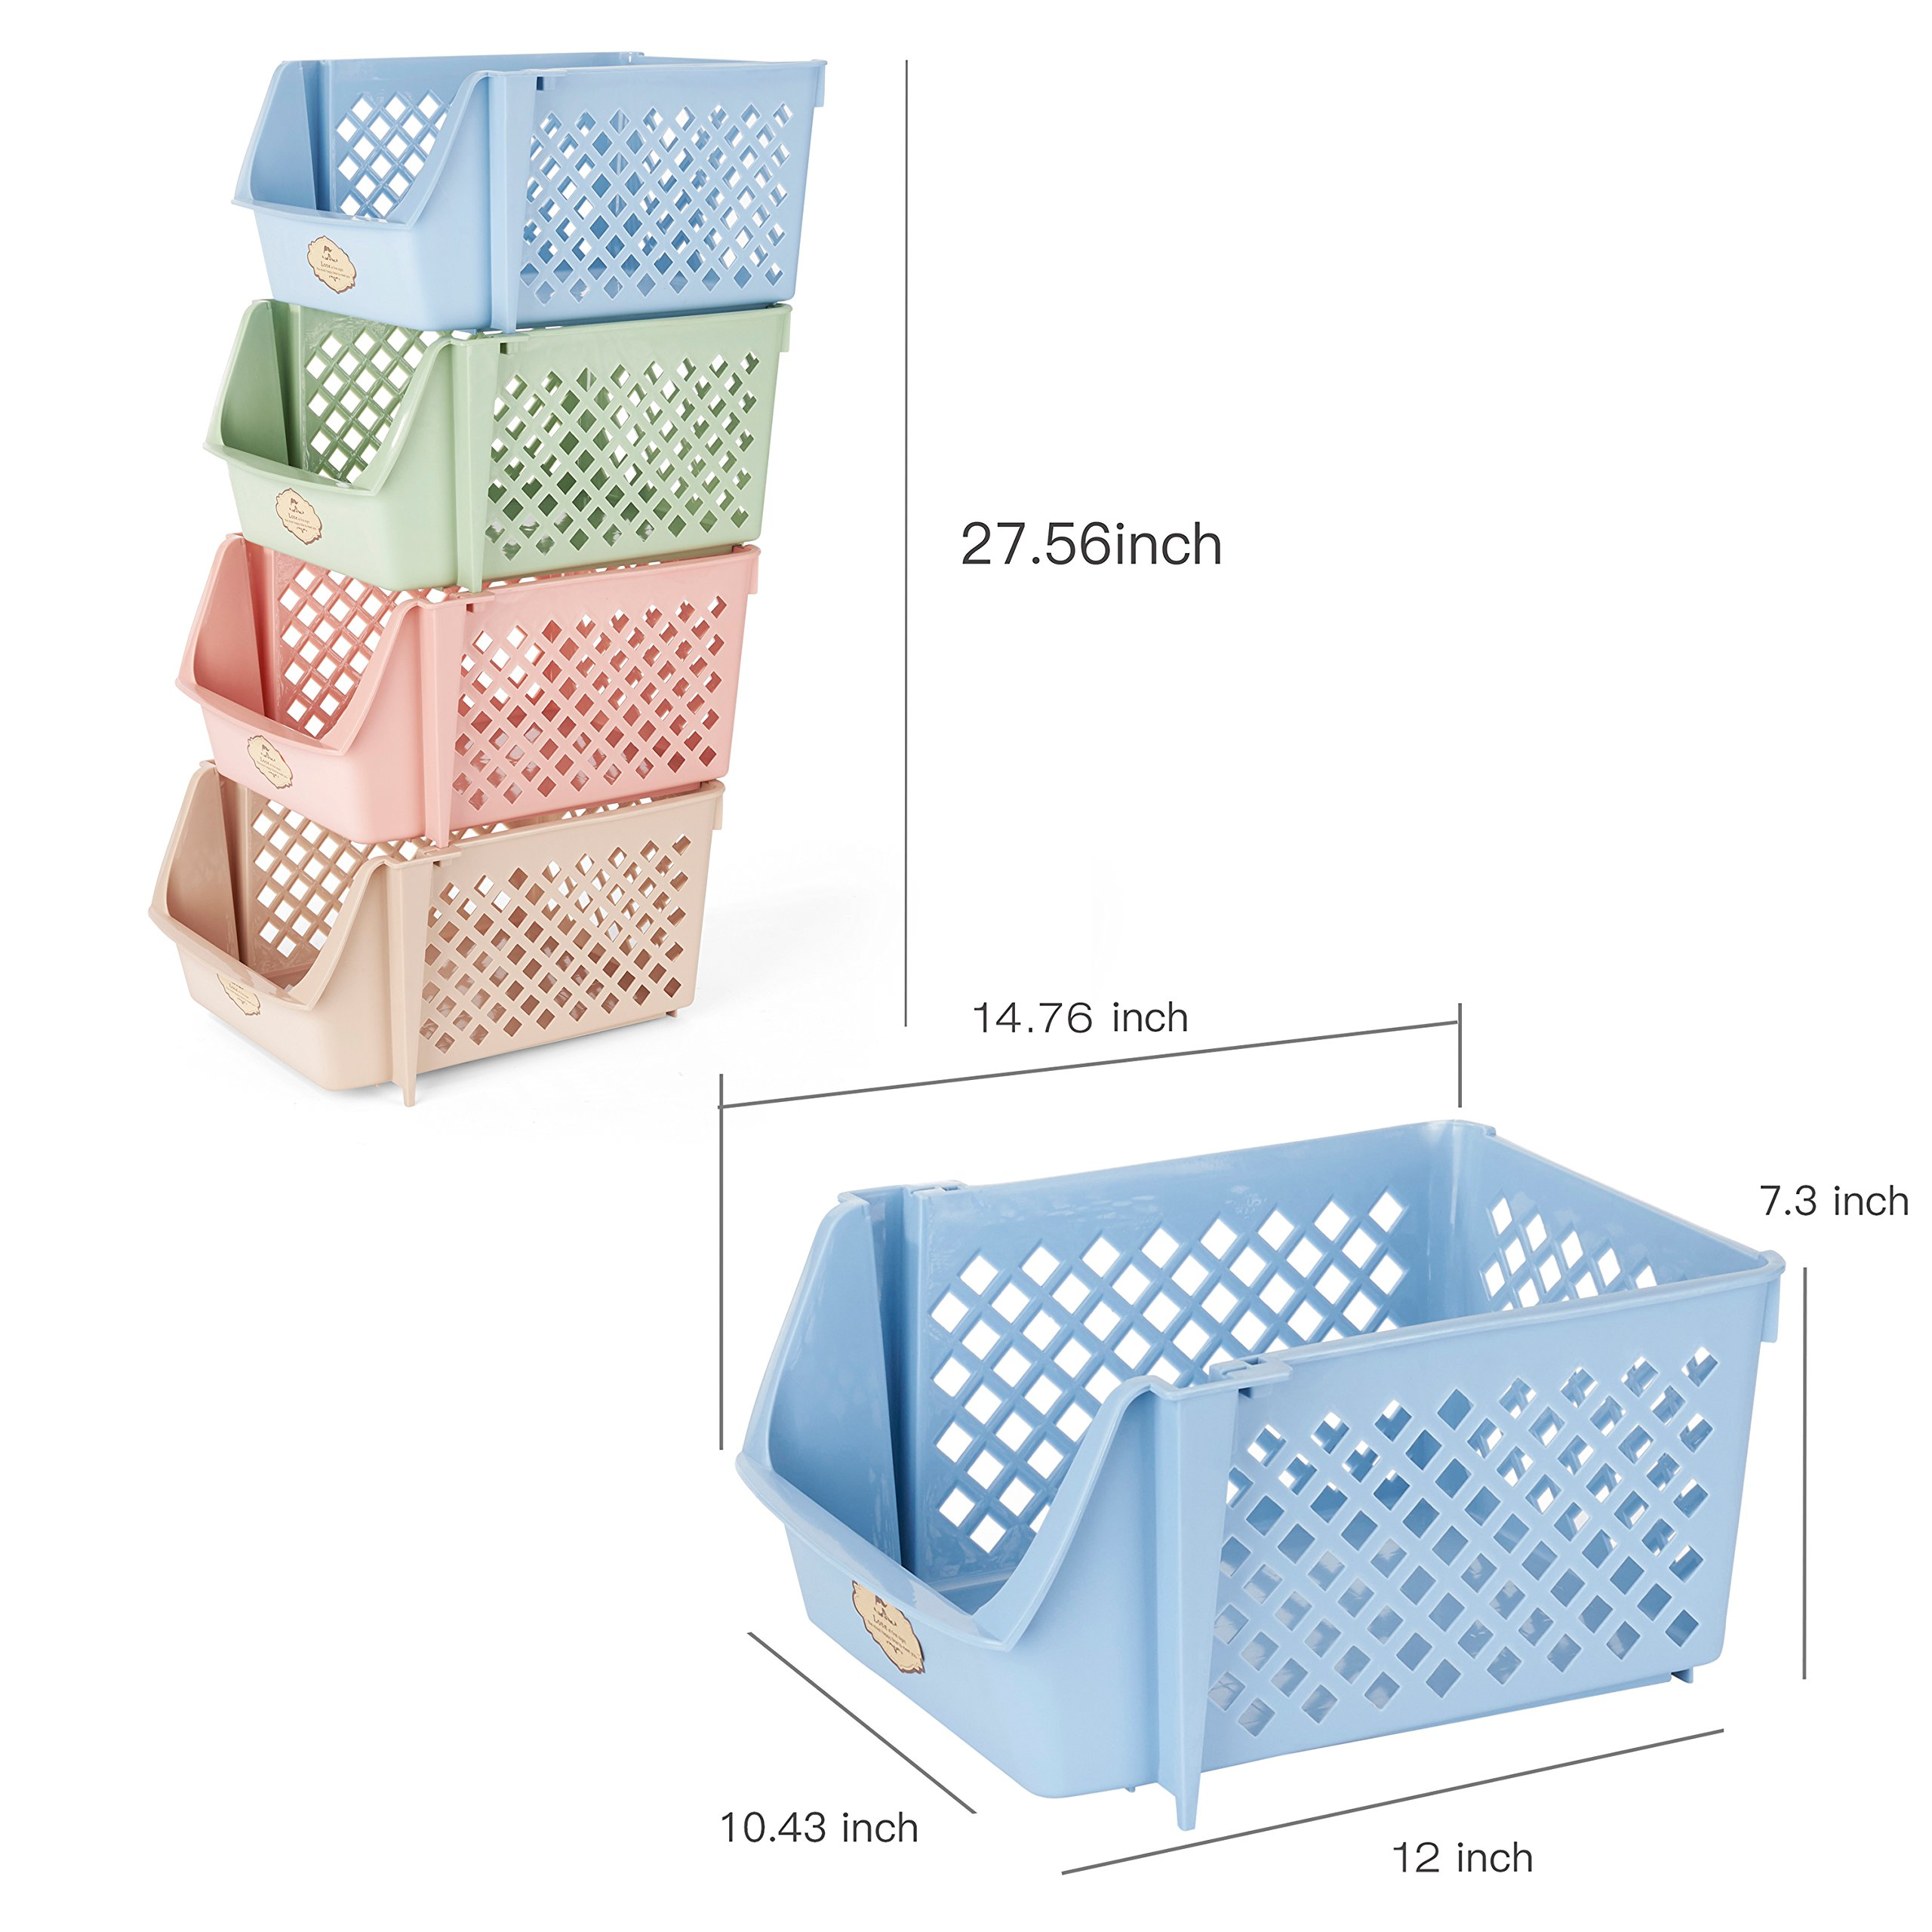 Titan Mall Storage Bins Plastic Stackable Storage Bins for Food, Fruits, Files, Mixed Color Storage Baskets, 15 X 10 X 7 Inch/bin, Blue-Green-Pink-Khaki, Set of 4 by Titan Mall (Image #8)